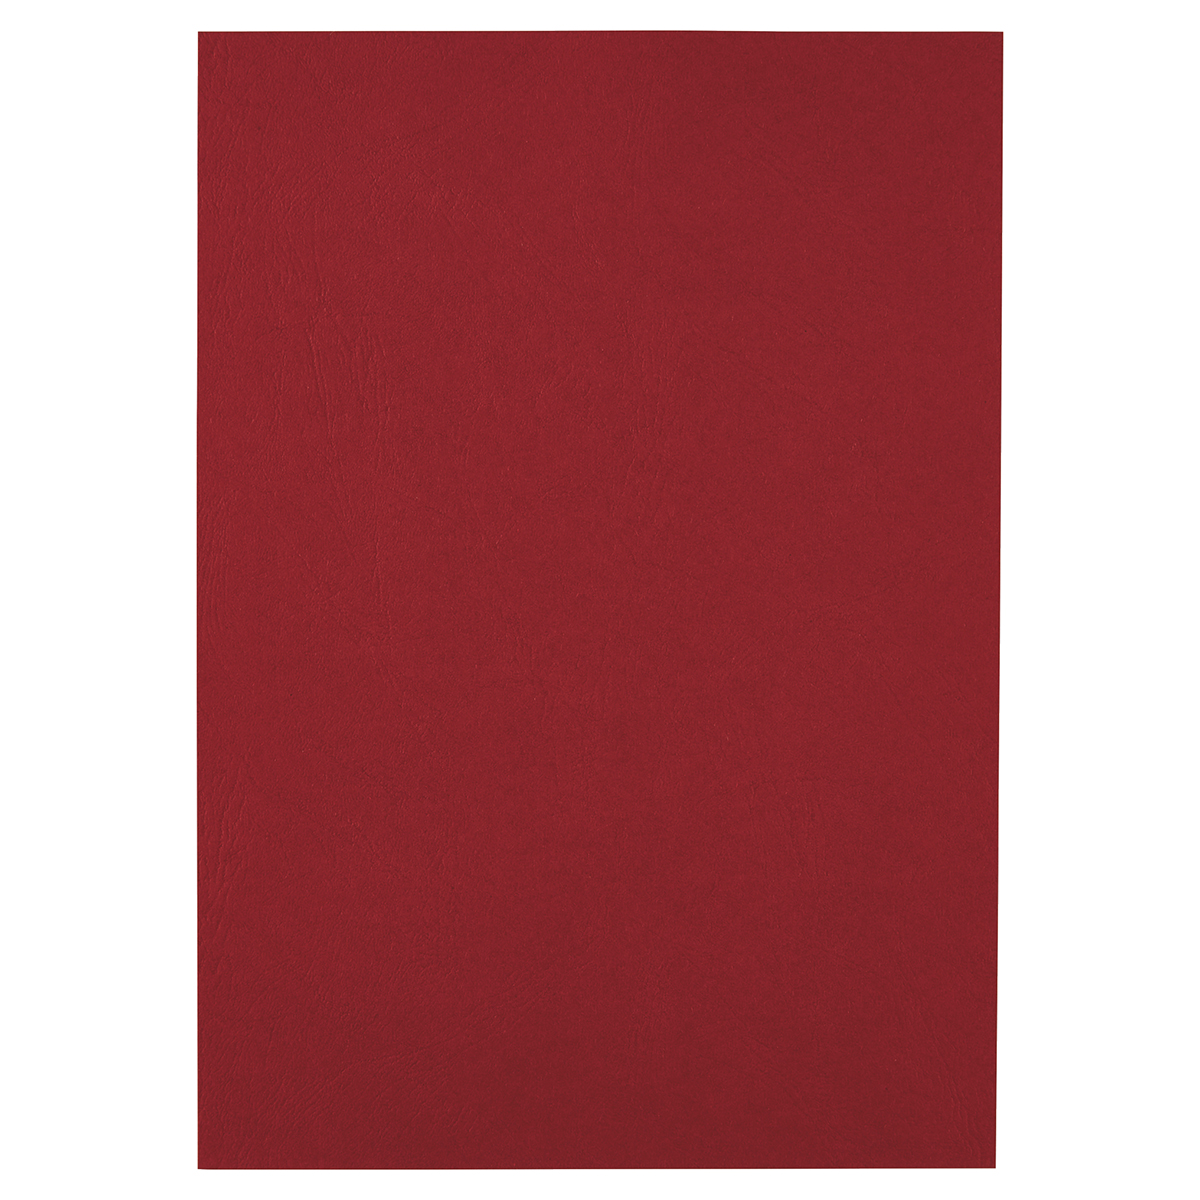 GBC CE040030 Leathergrain A4 Cover Dark Red 100pk